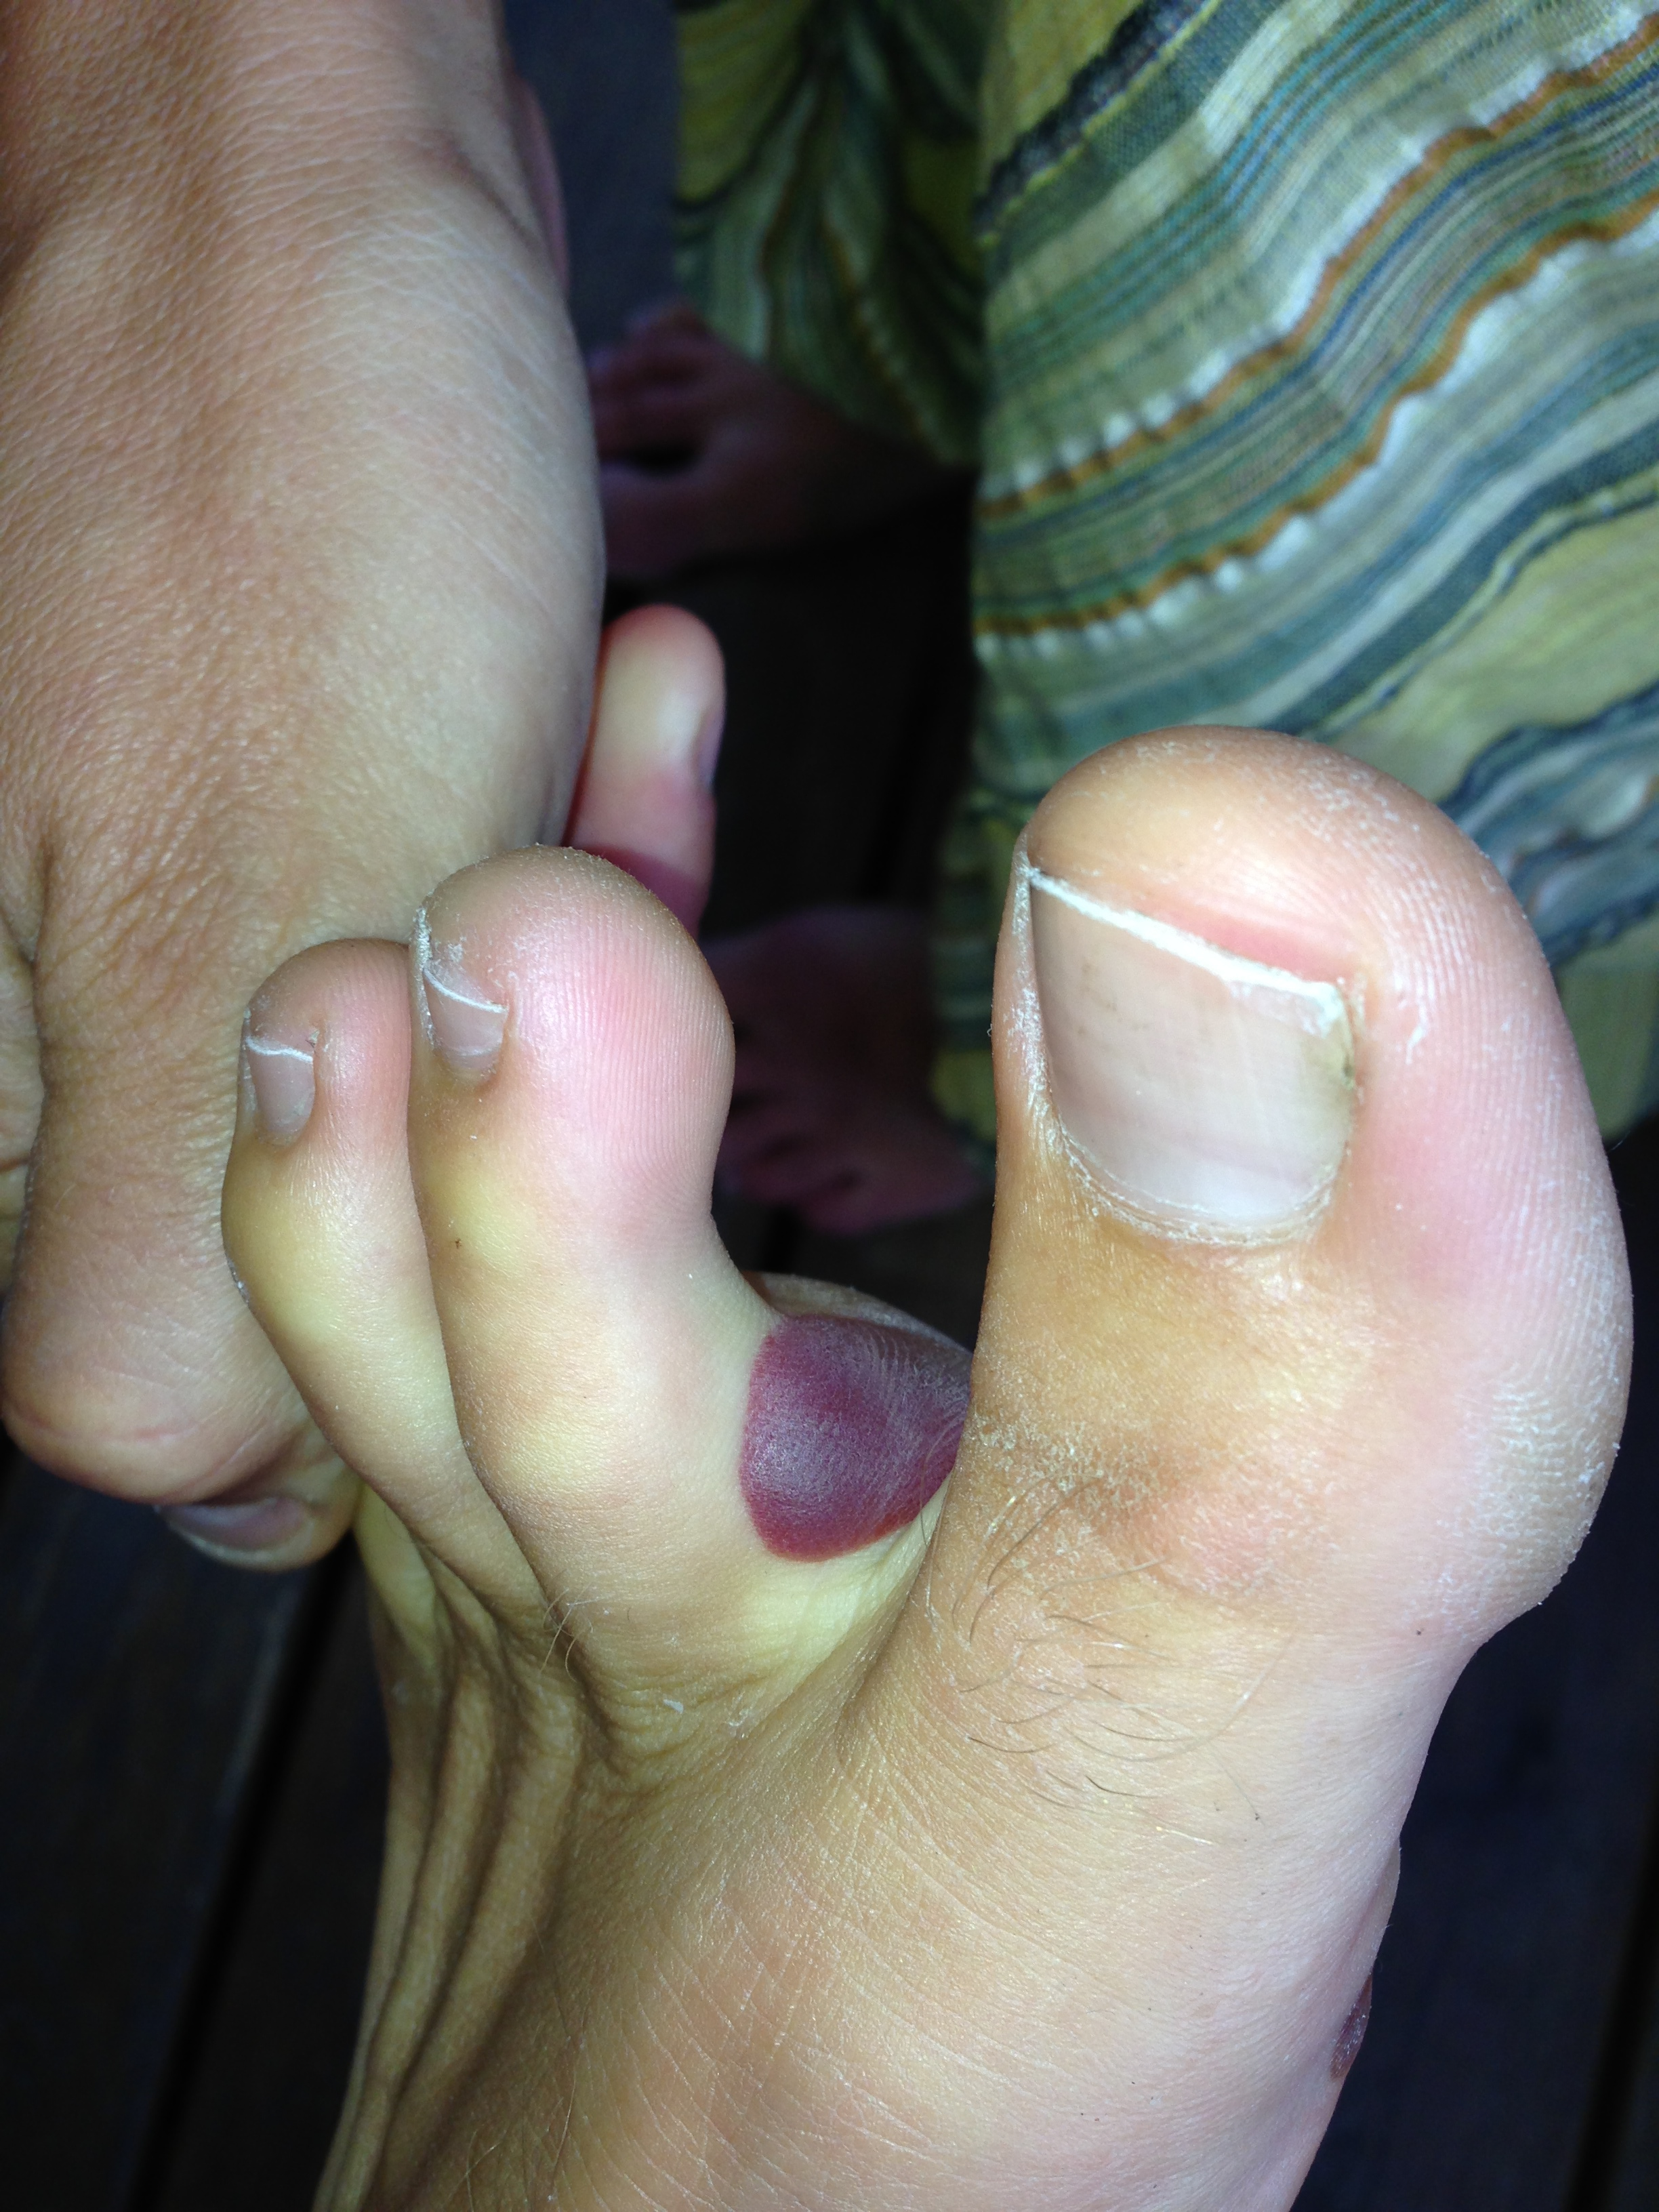 One unfortunate side-effect of barefoot shoes...